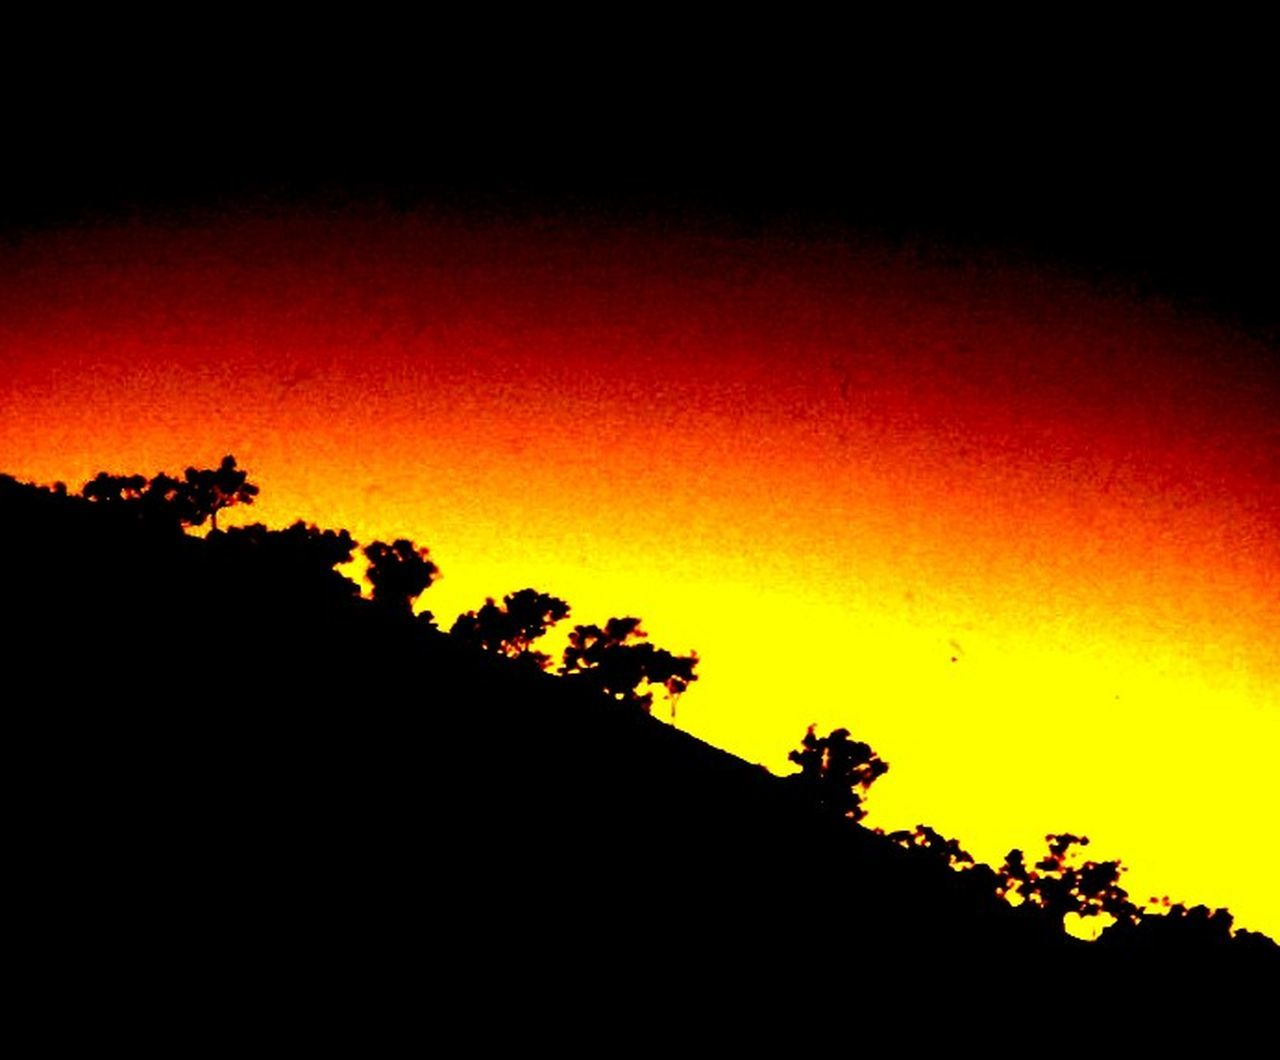 silhouette, orange color, sunset, nature, scenics, no people, tree, beauty in nature, outdoors, sky, night, landscape